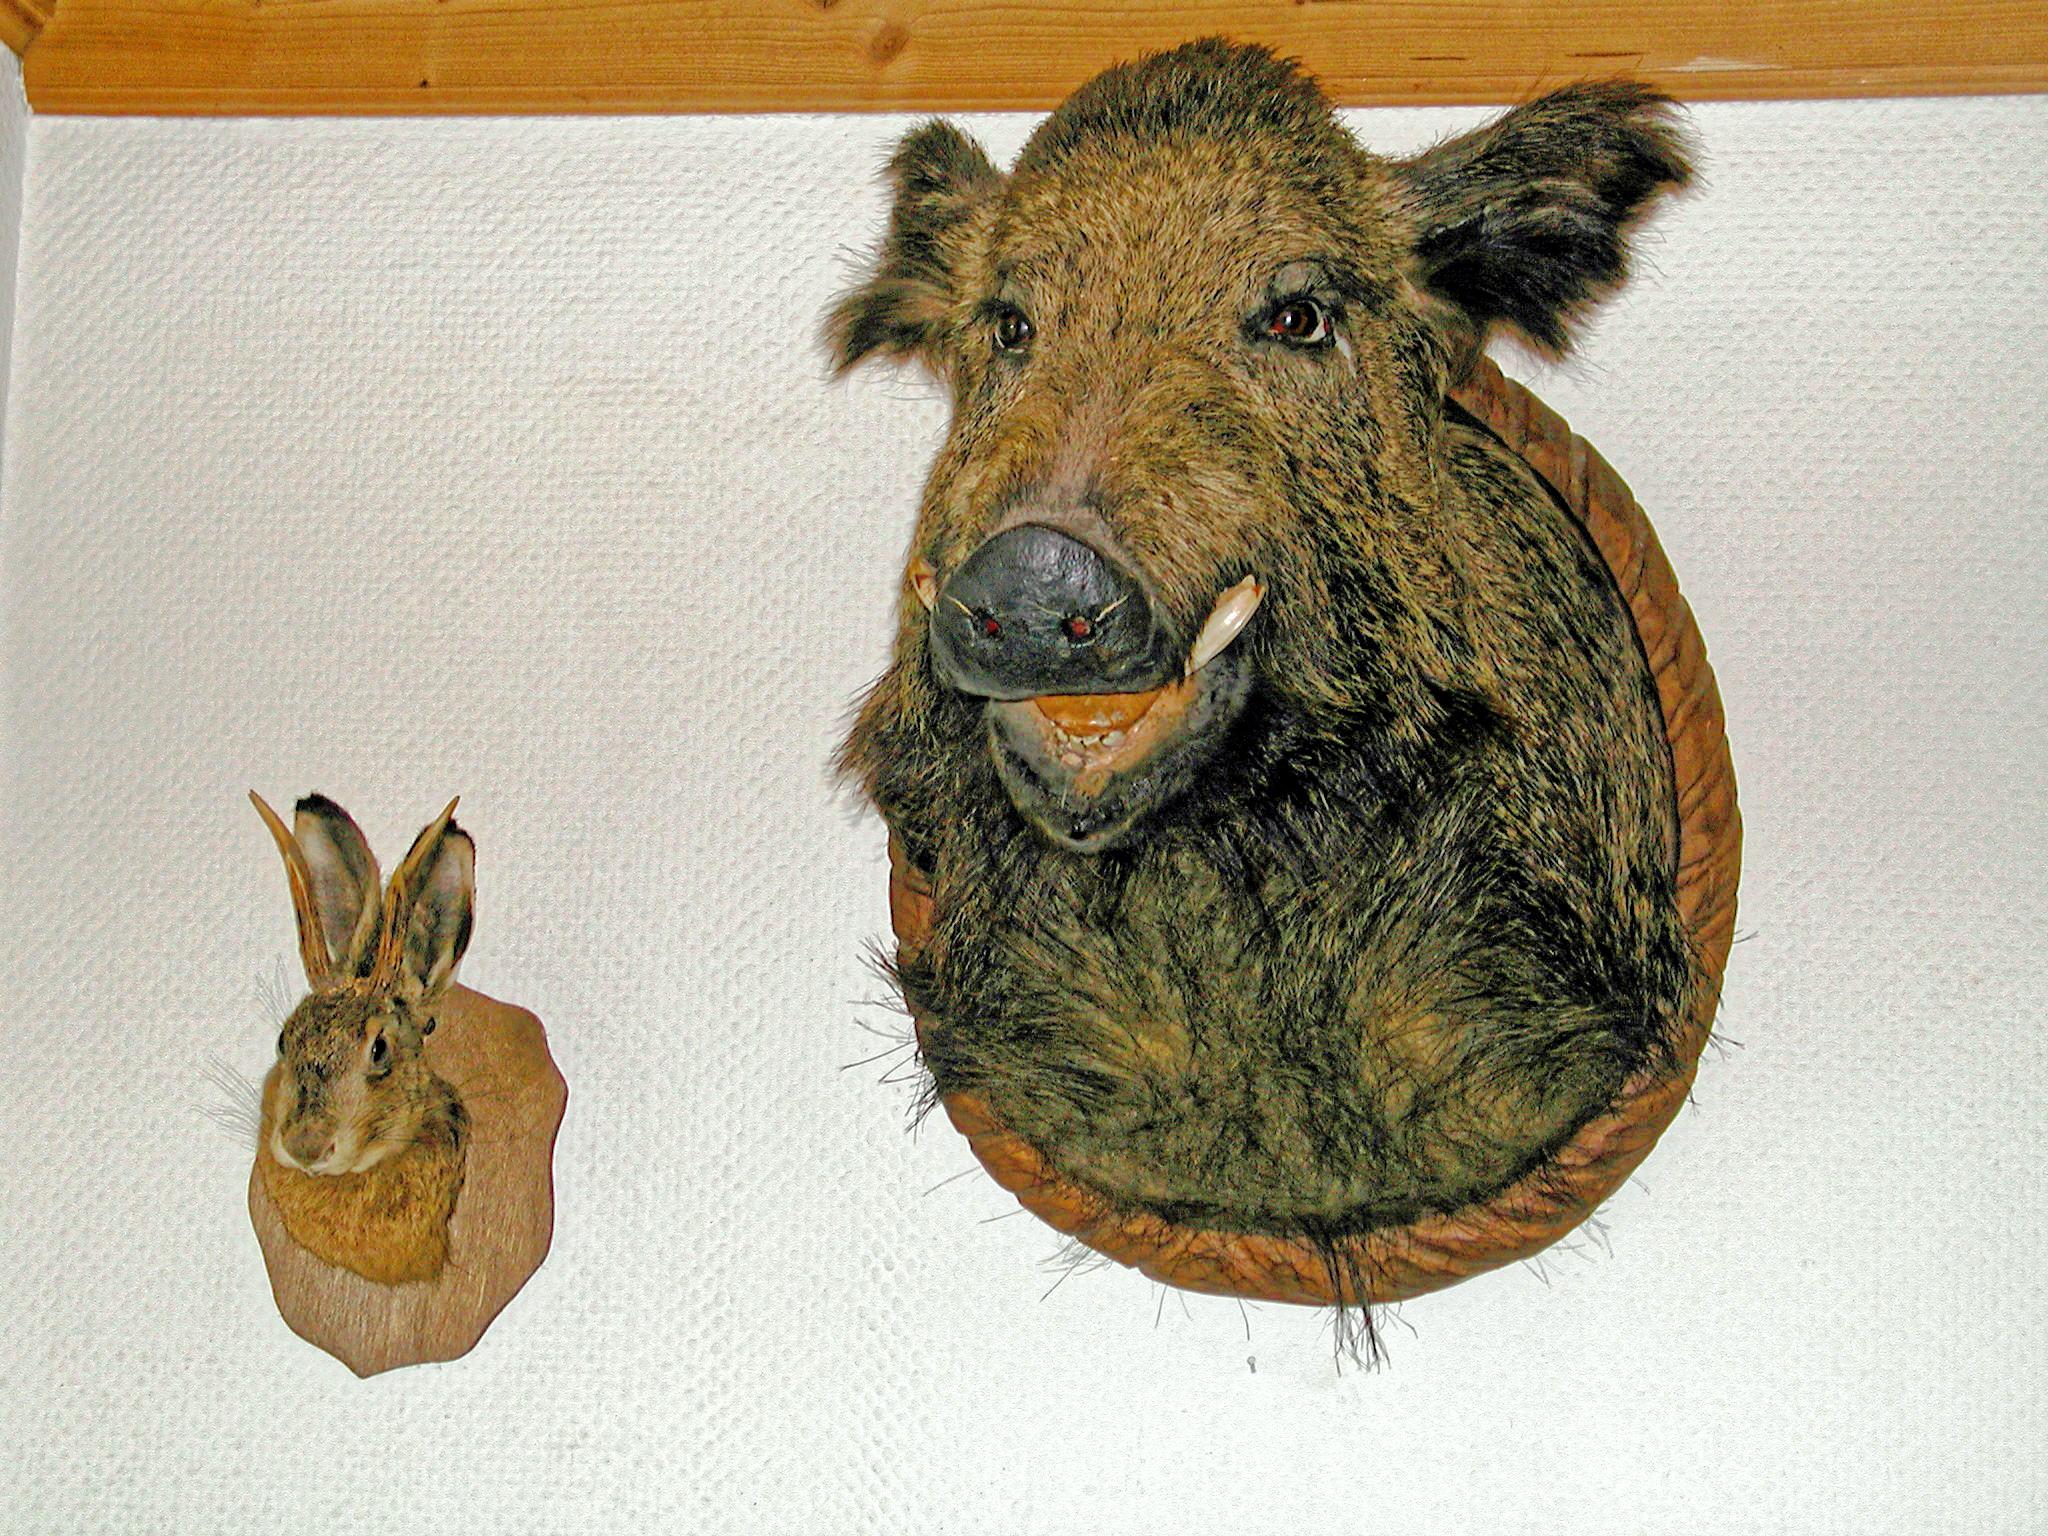 This should be wolpertinger-and-friend-1.jpeg.  Is it missing?